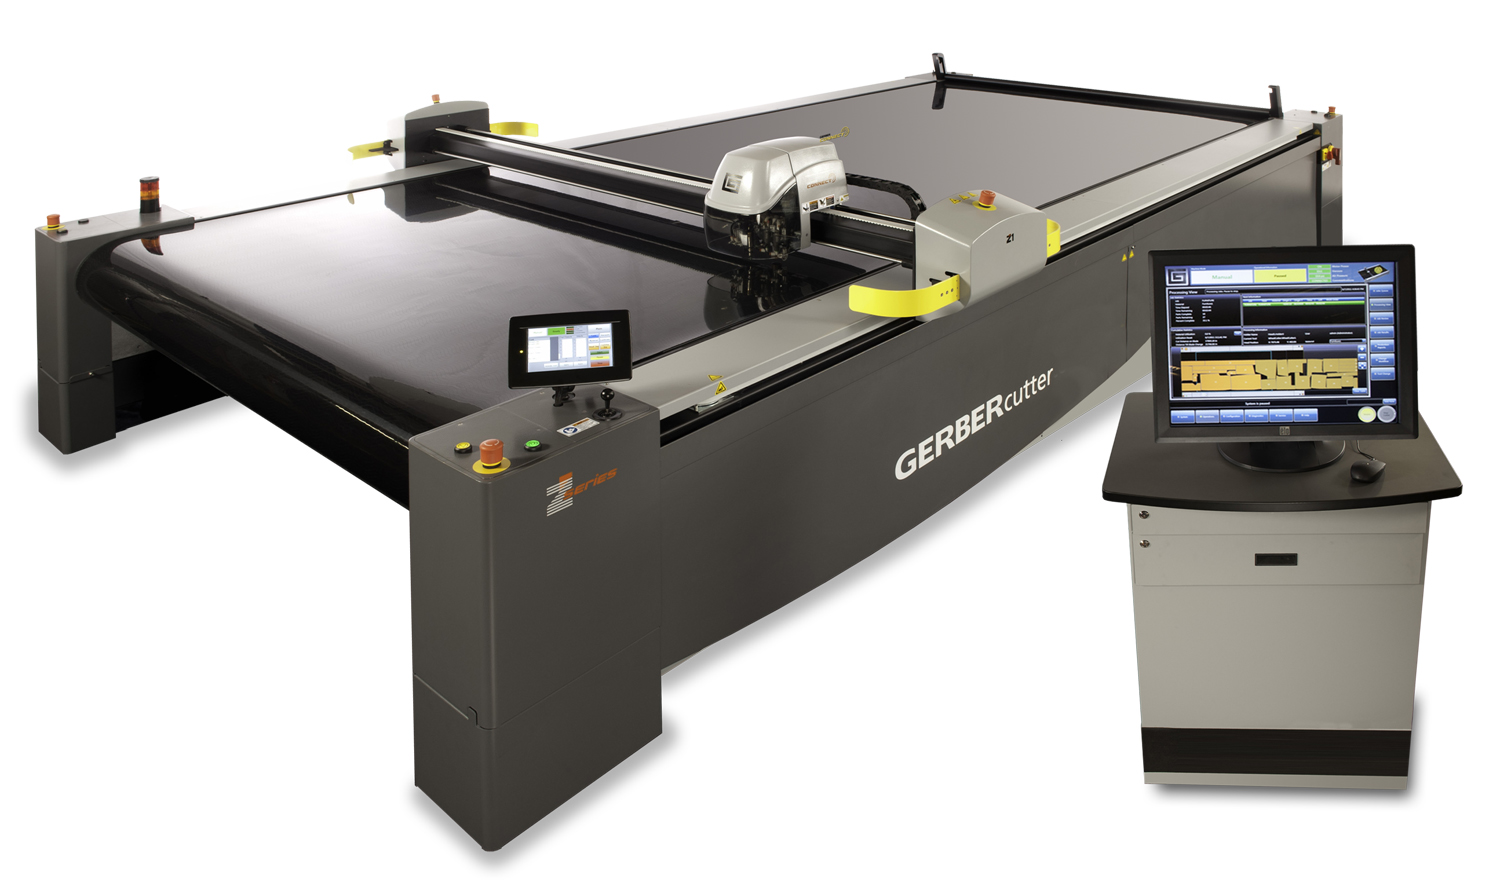 gerber cutting machine